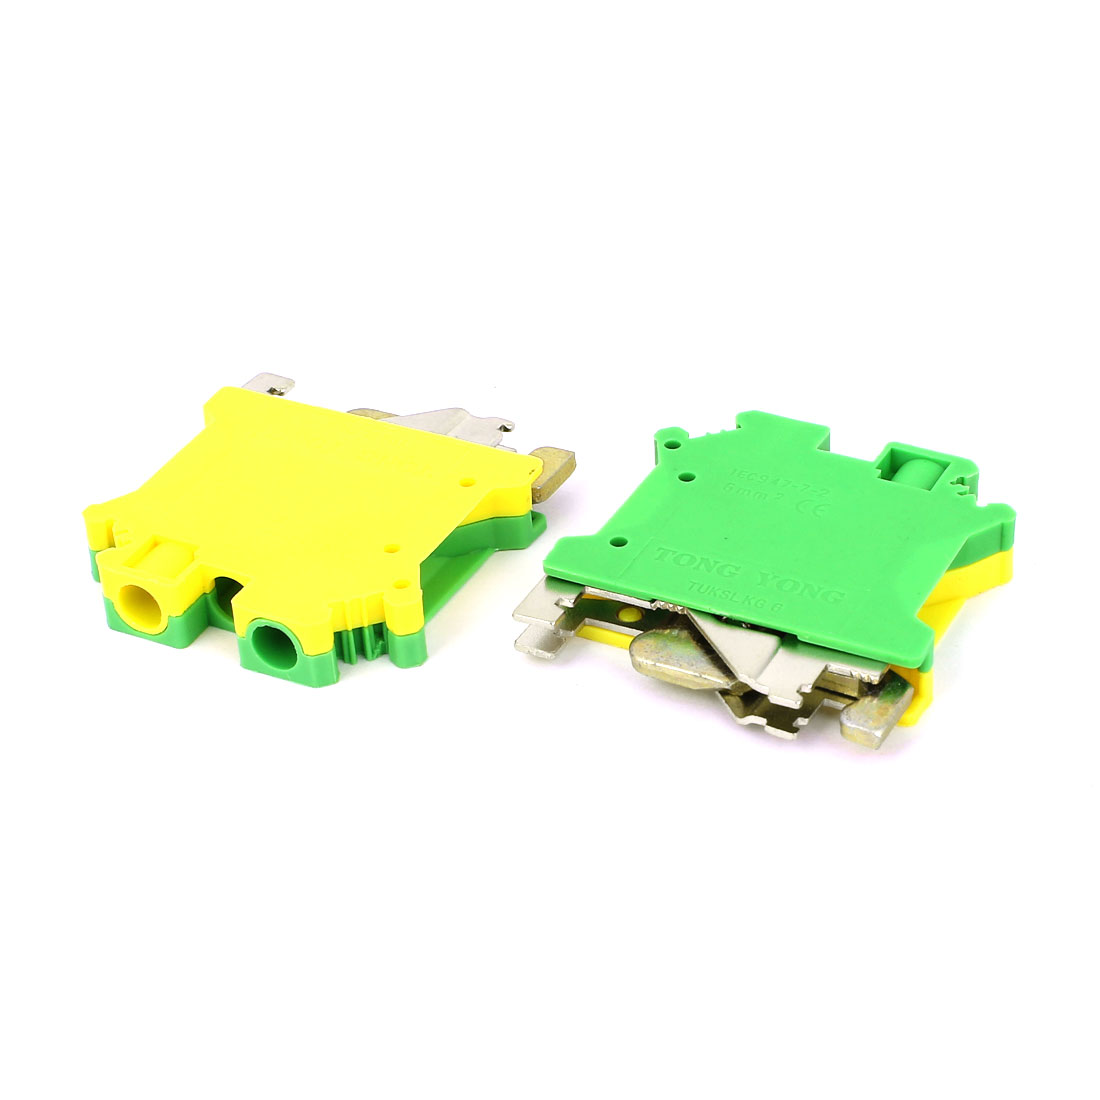 2 Pcs TUKSLKG-6 800V 41A Side Entry Type Screw Termial Block Green Yellow